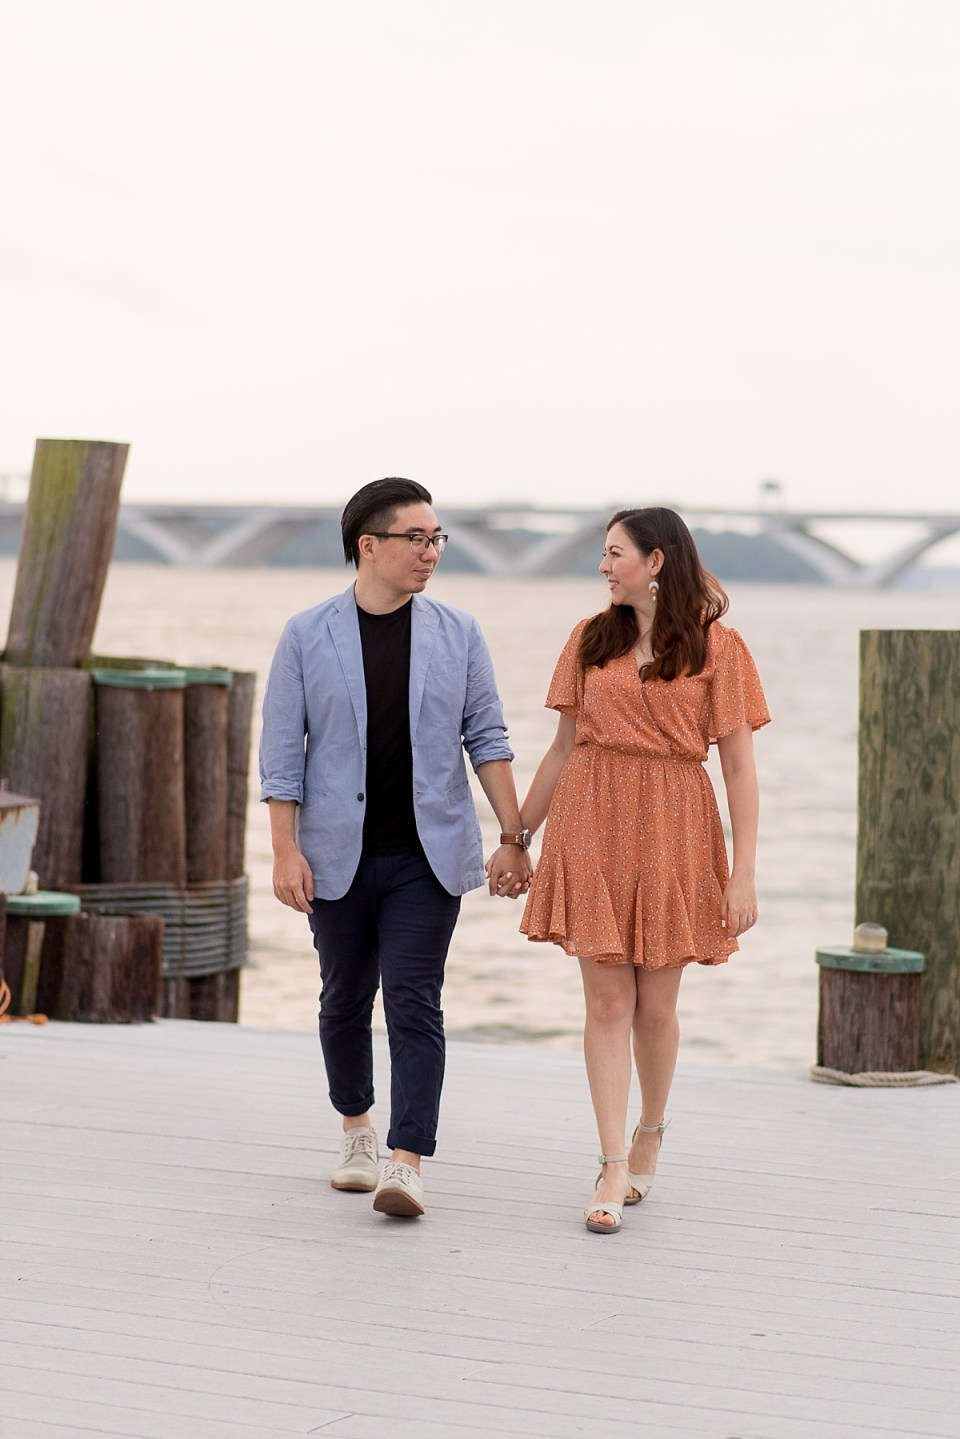 Engagement Session at the Waterfront in Alexandria, VA